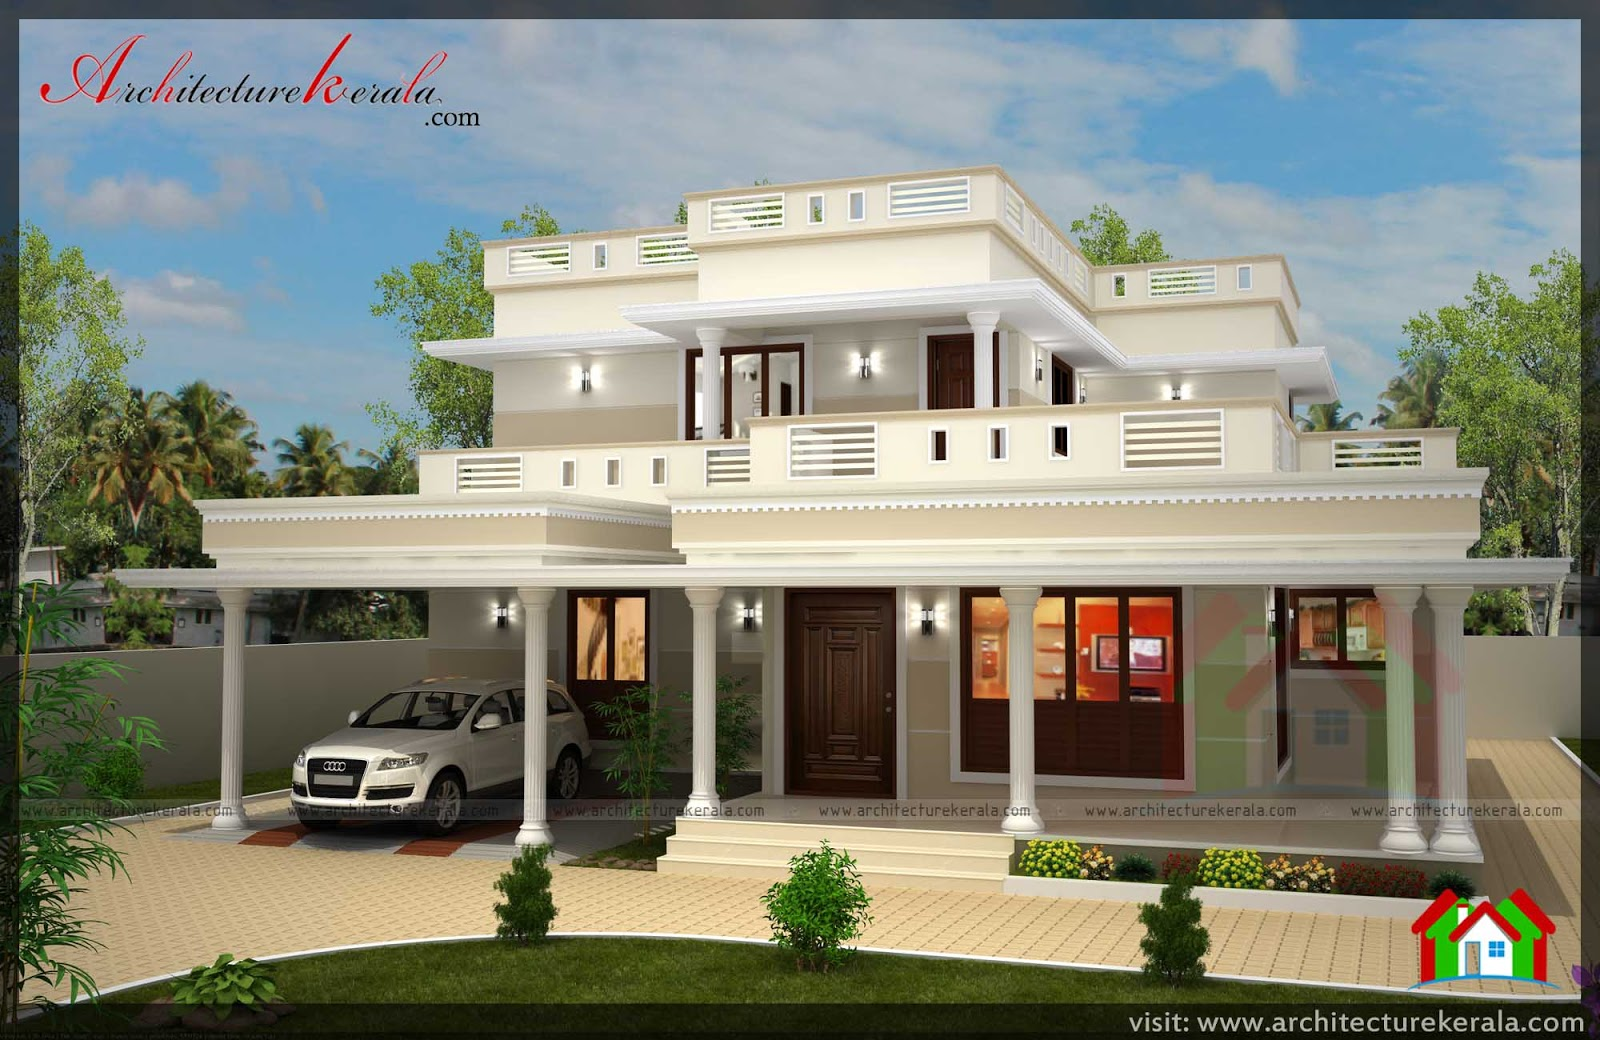 Stunning 4 bedroom kerala home design with pooja room free - Home design and plans ...